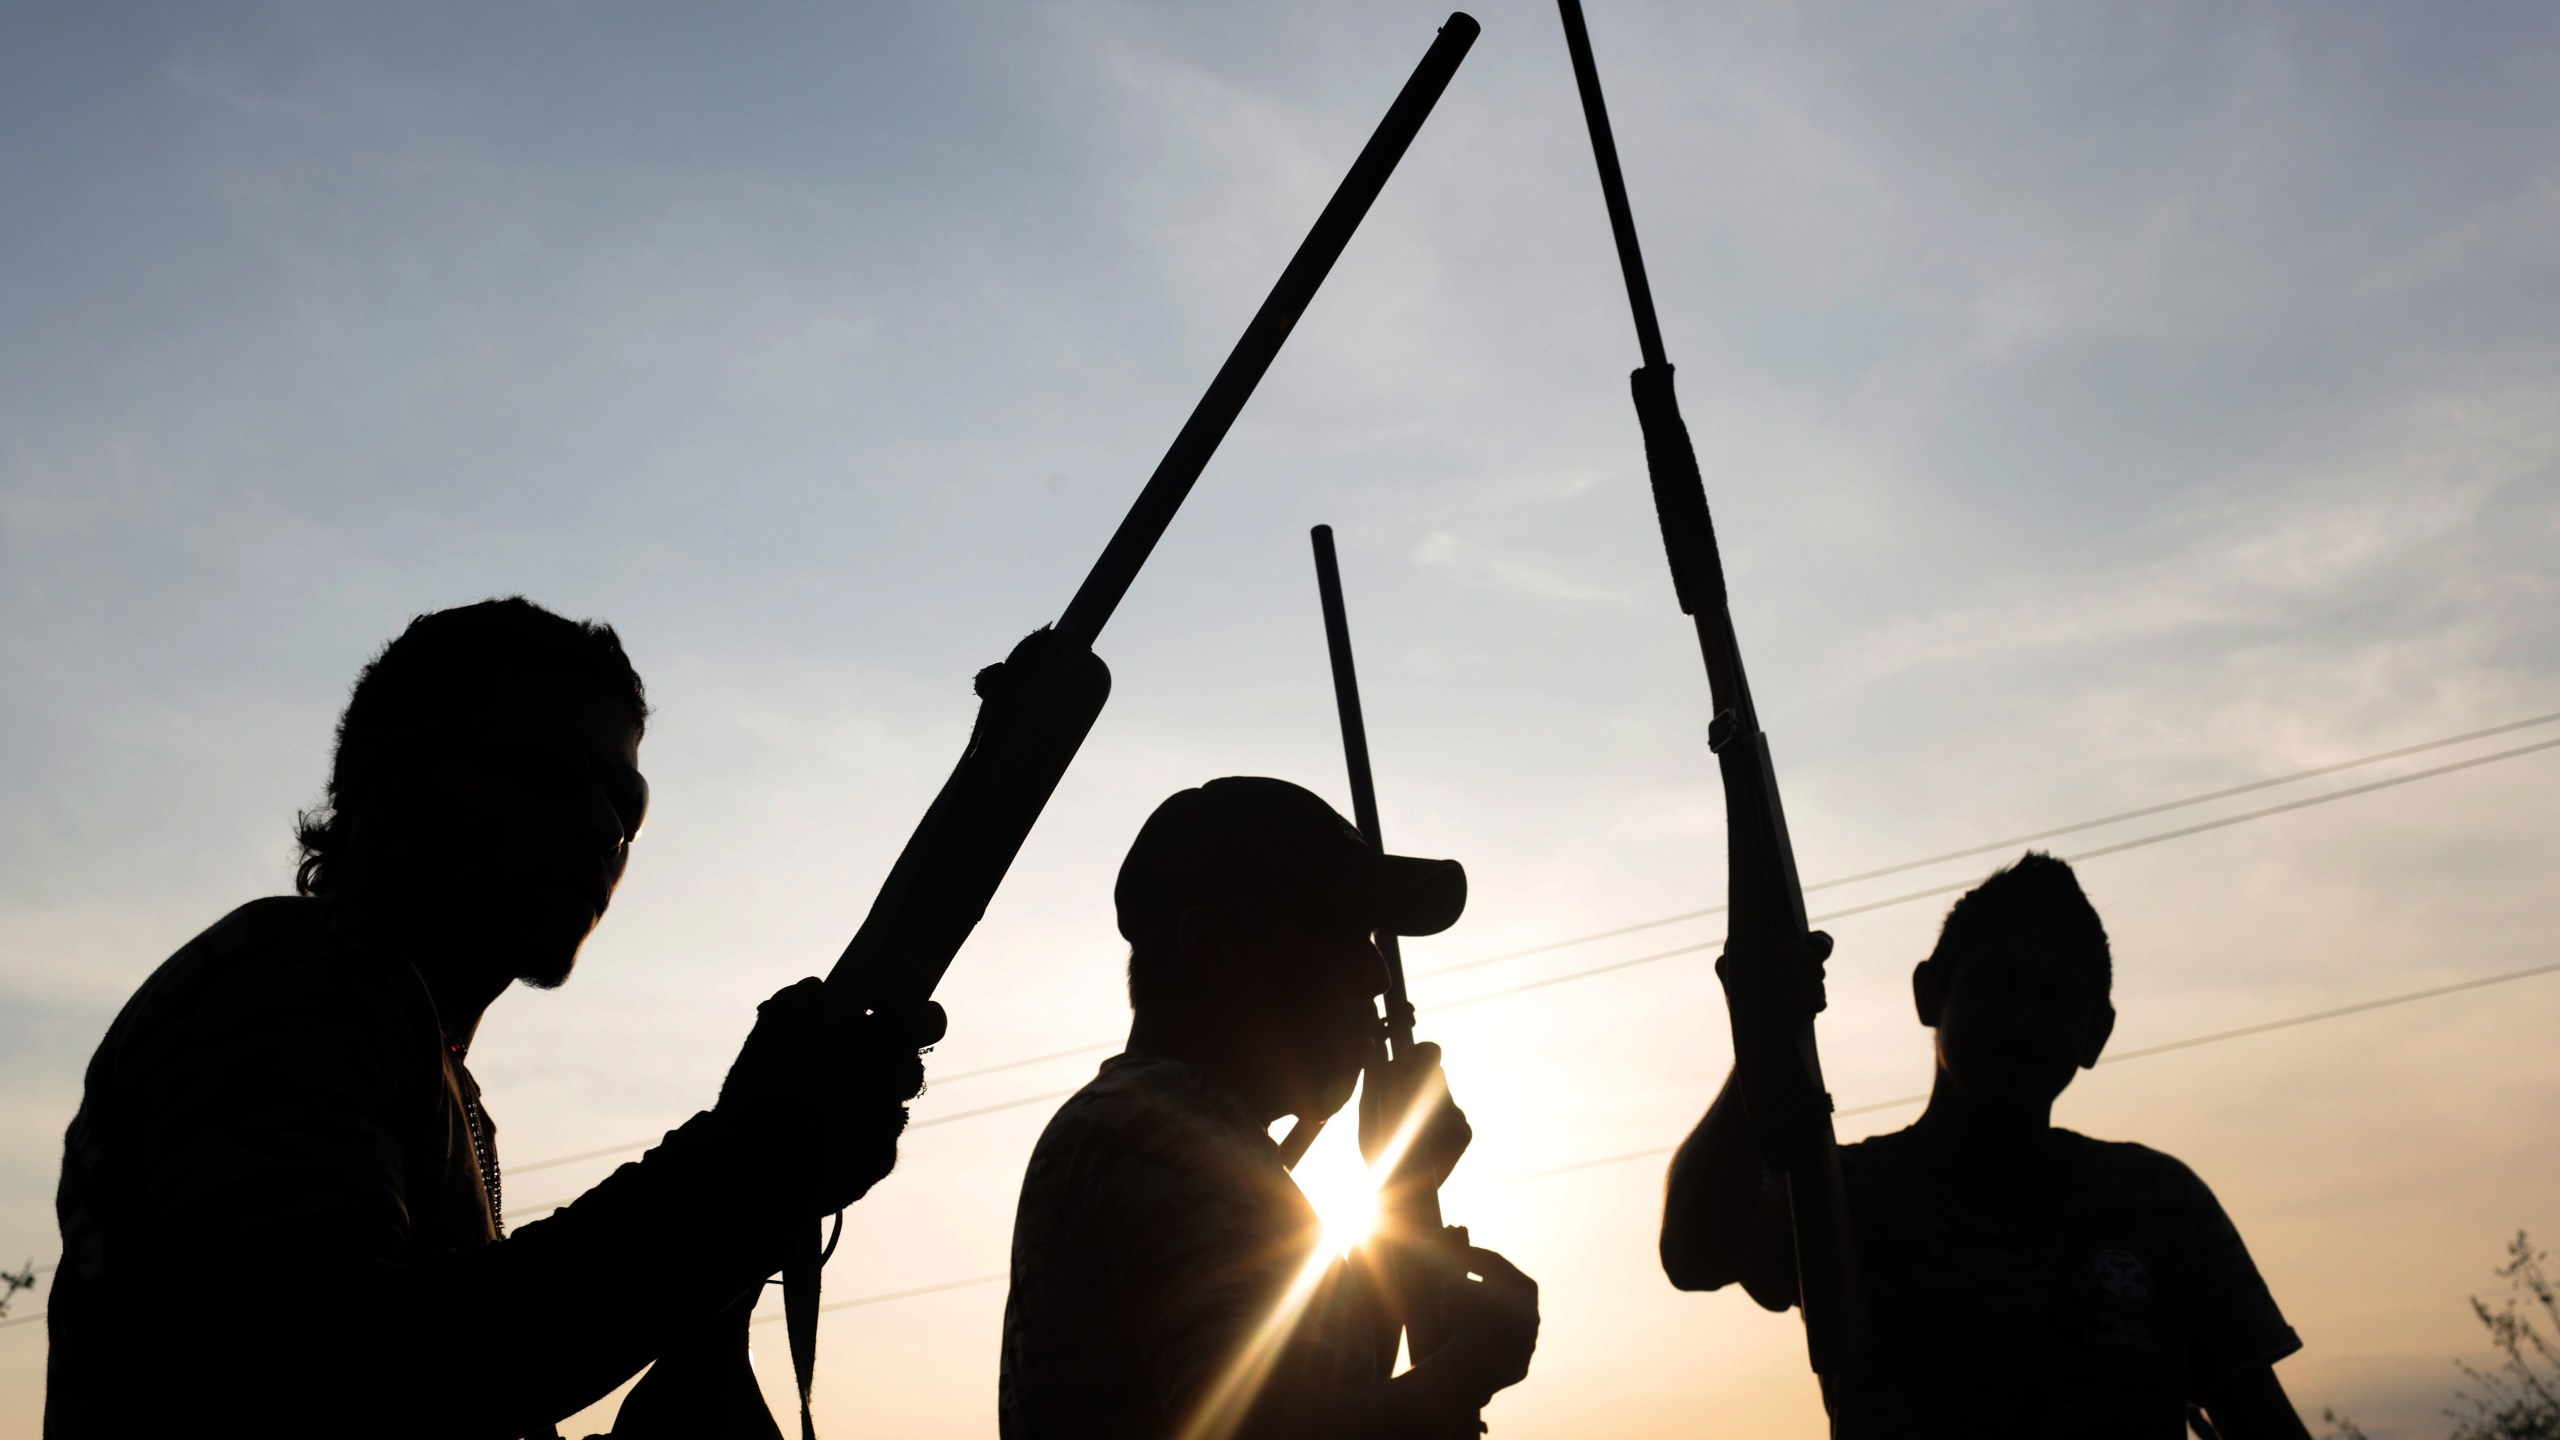 Members of the vigilante group United Front for Security and Development of the State of Guerrero (FUSDEG) take positions after learning of an alleged imminent attack by the rival group Union of Villages and Organizations of the State of Guerrero (UPOEG) at San Juan del Reparo, Guerrero State, Mexico on March 31, 2015. (Credit: Pedro PARDO/AFP/Getty Images)